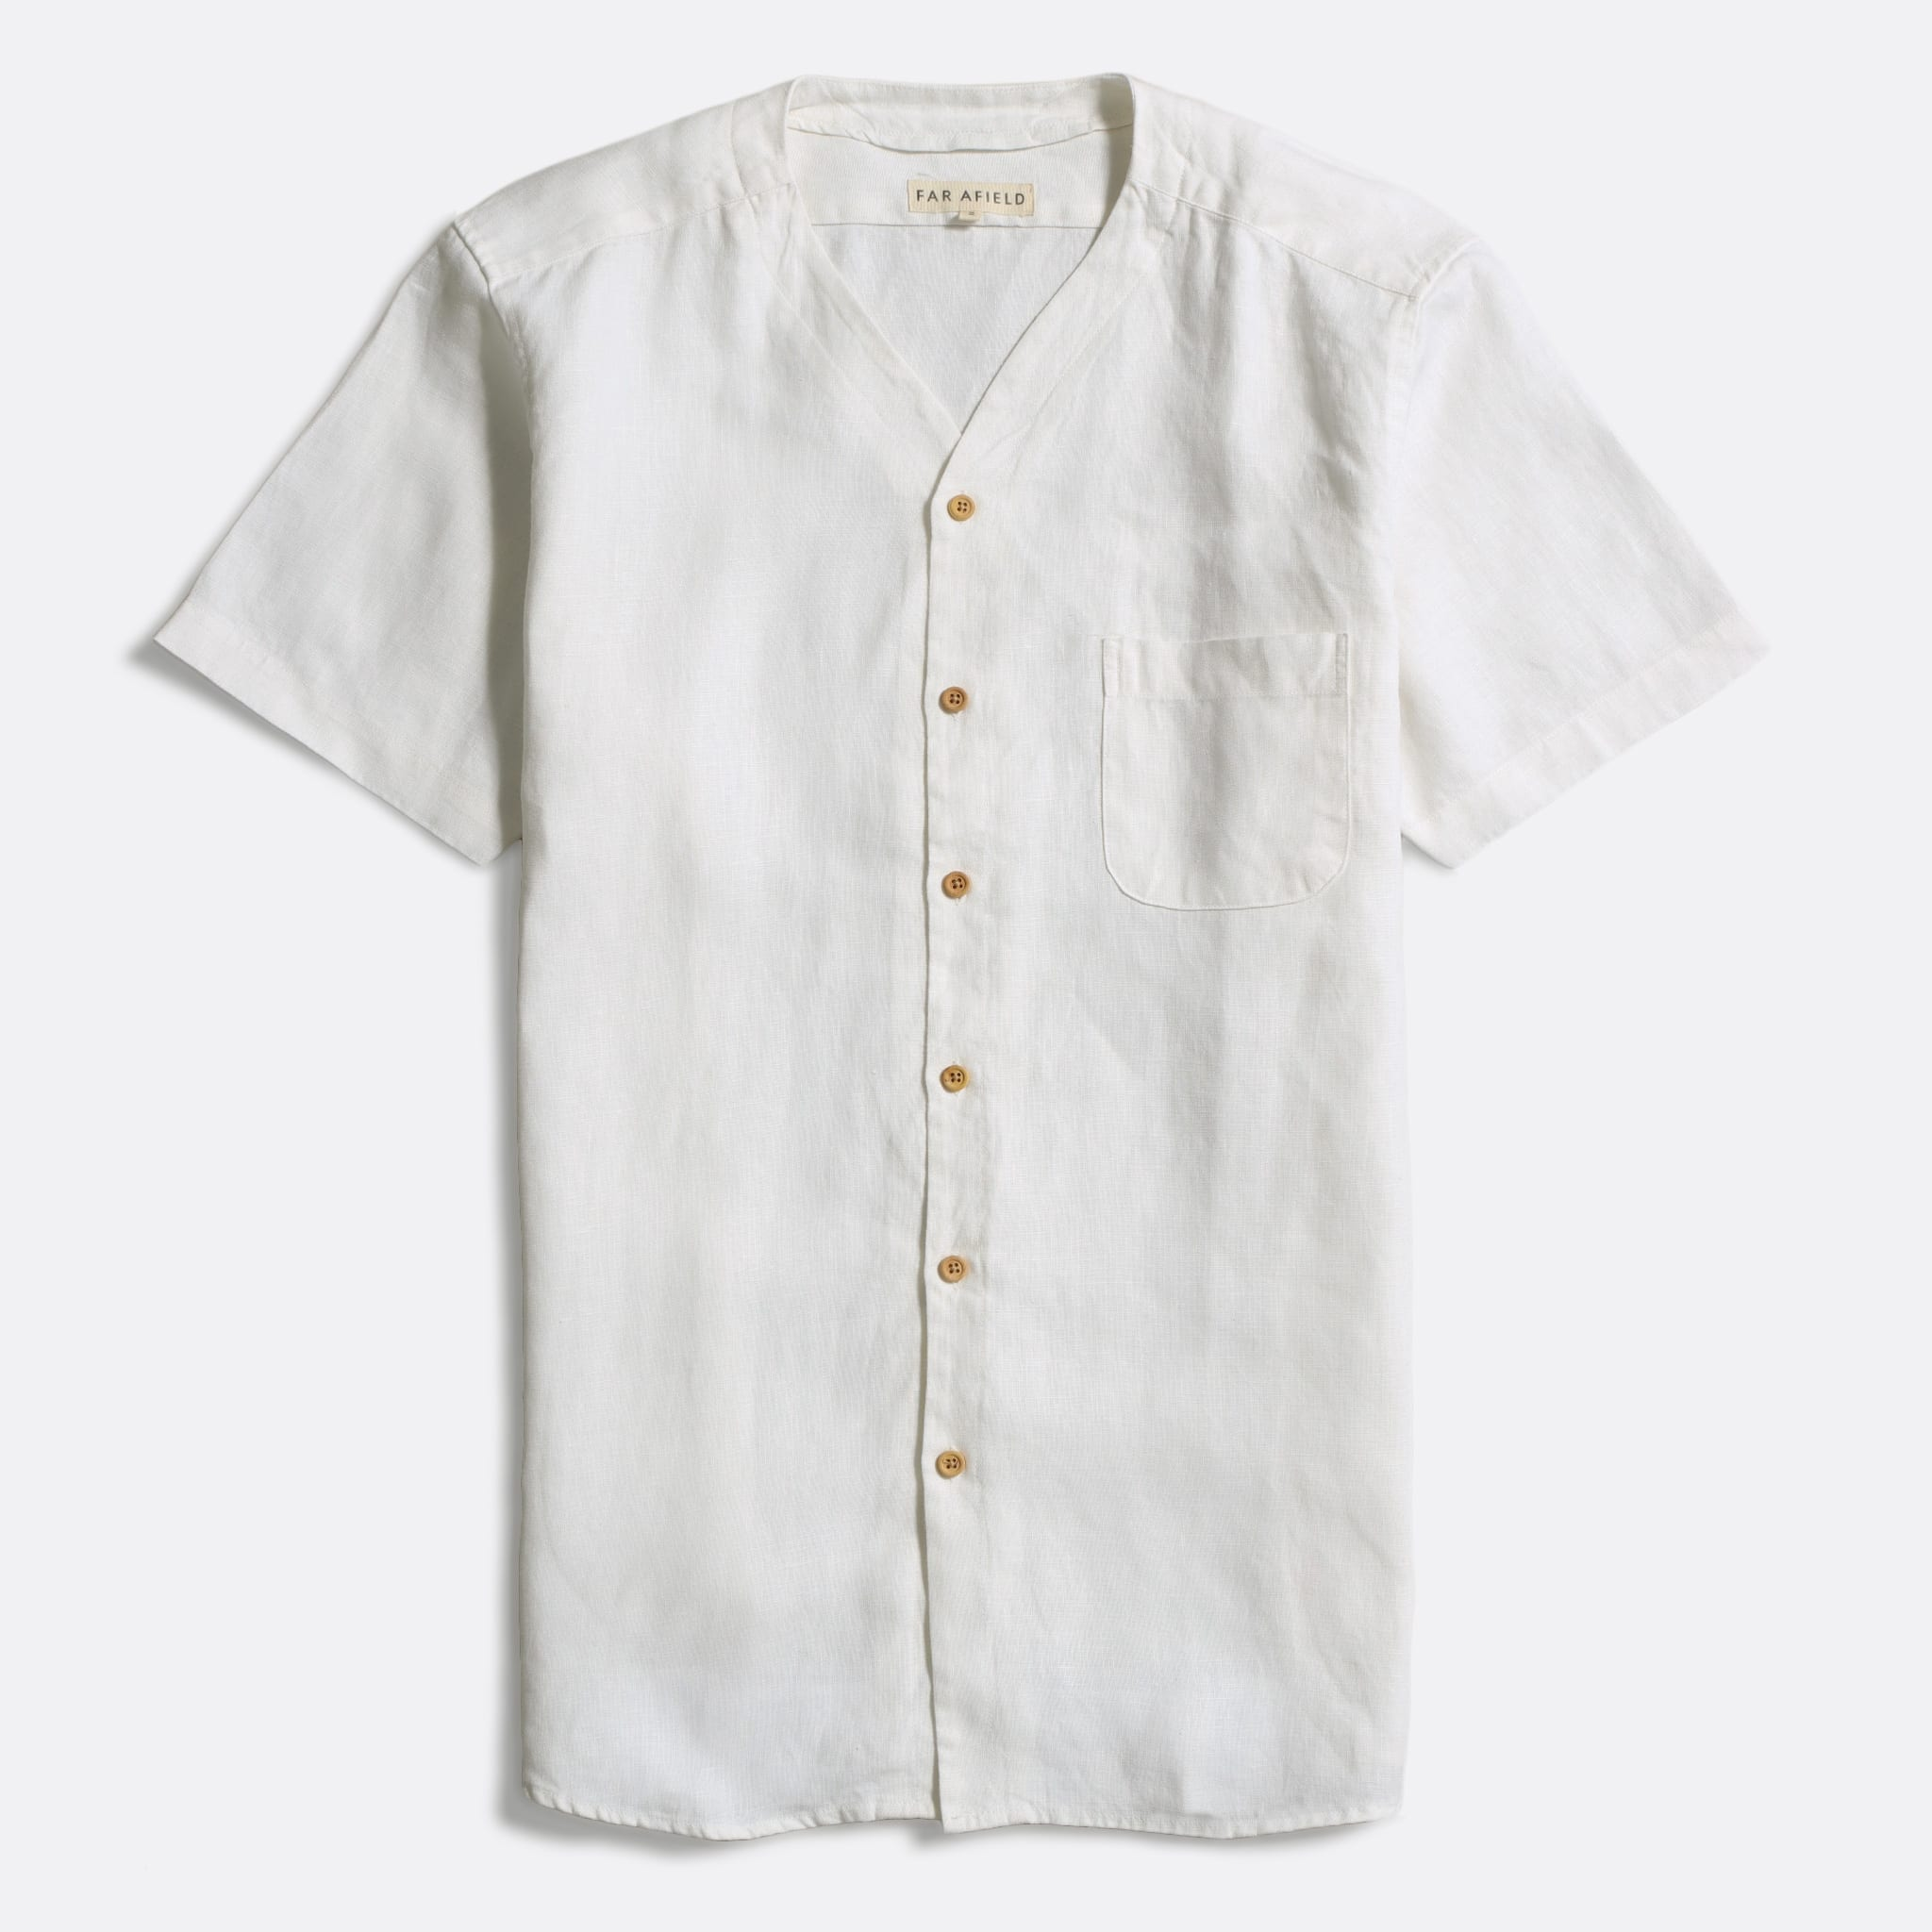 Far Afield Harvey Short Sleeve Shirt a White Sand Linen Fabric North American Casual